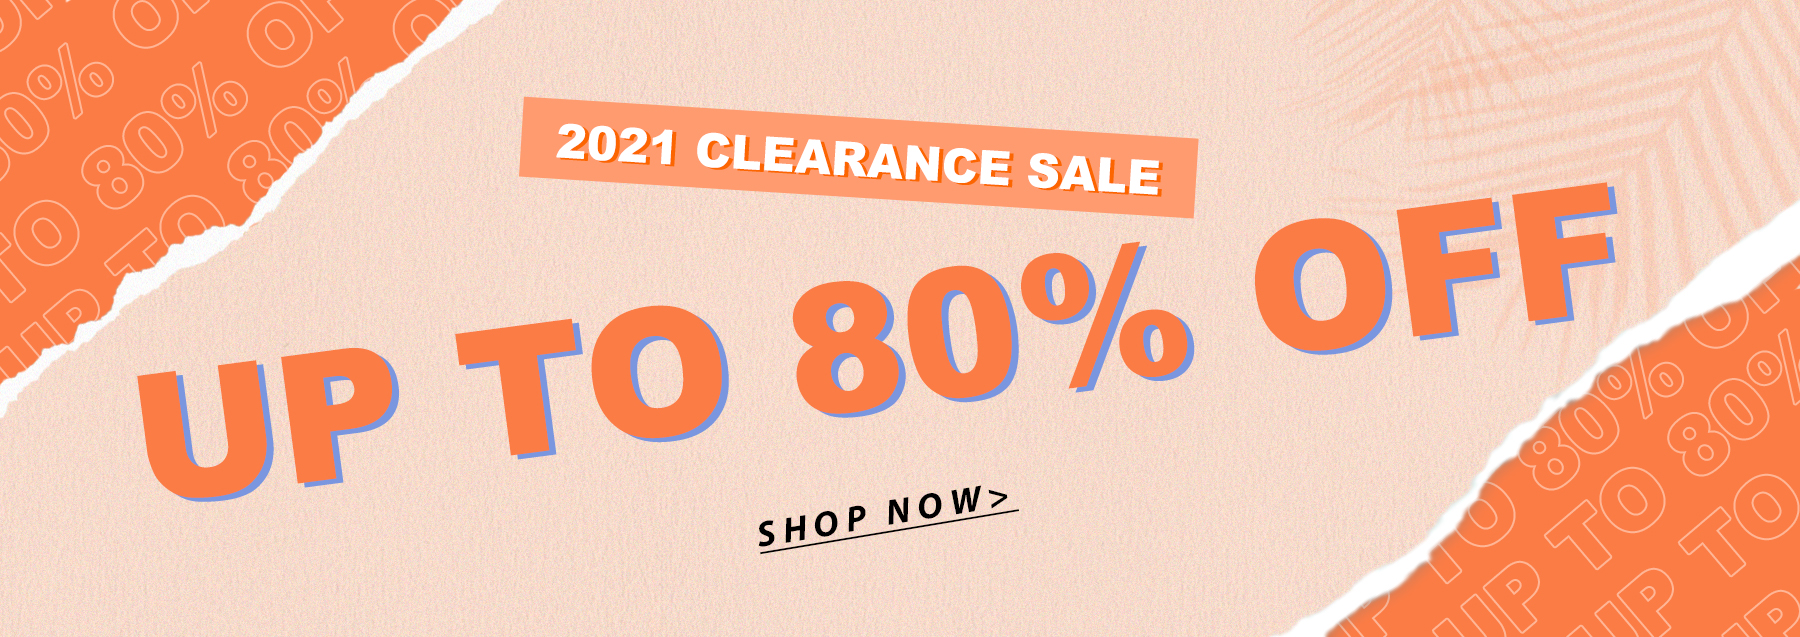 #2021 CLEARANCE SALE UP TO 80% OFF SHOP NOW